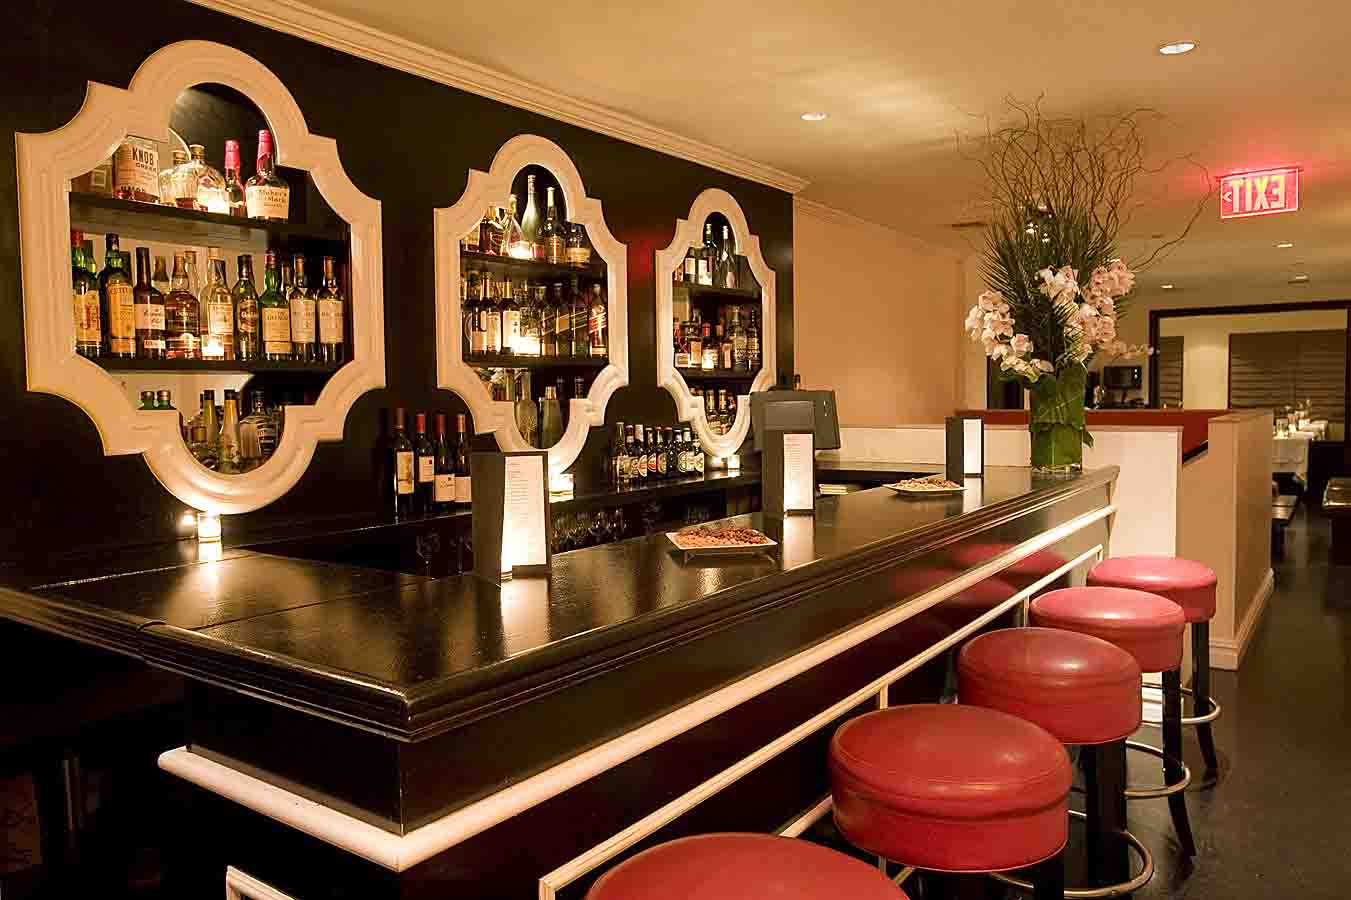 Deco Lounge Bar Restaurant. Perfect Rooftop Lounge Nd Level Bar With ...